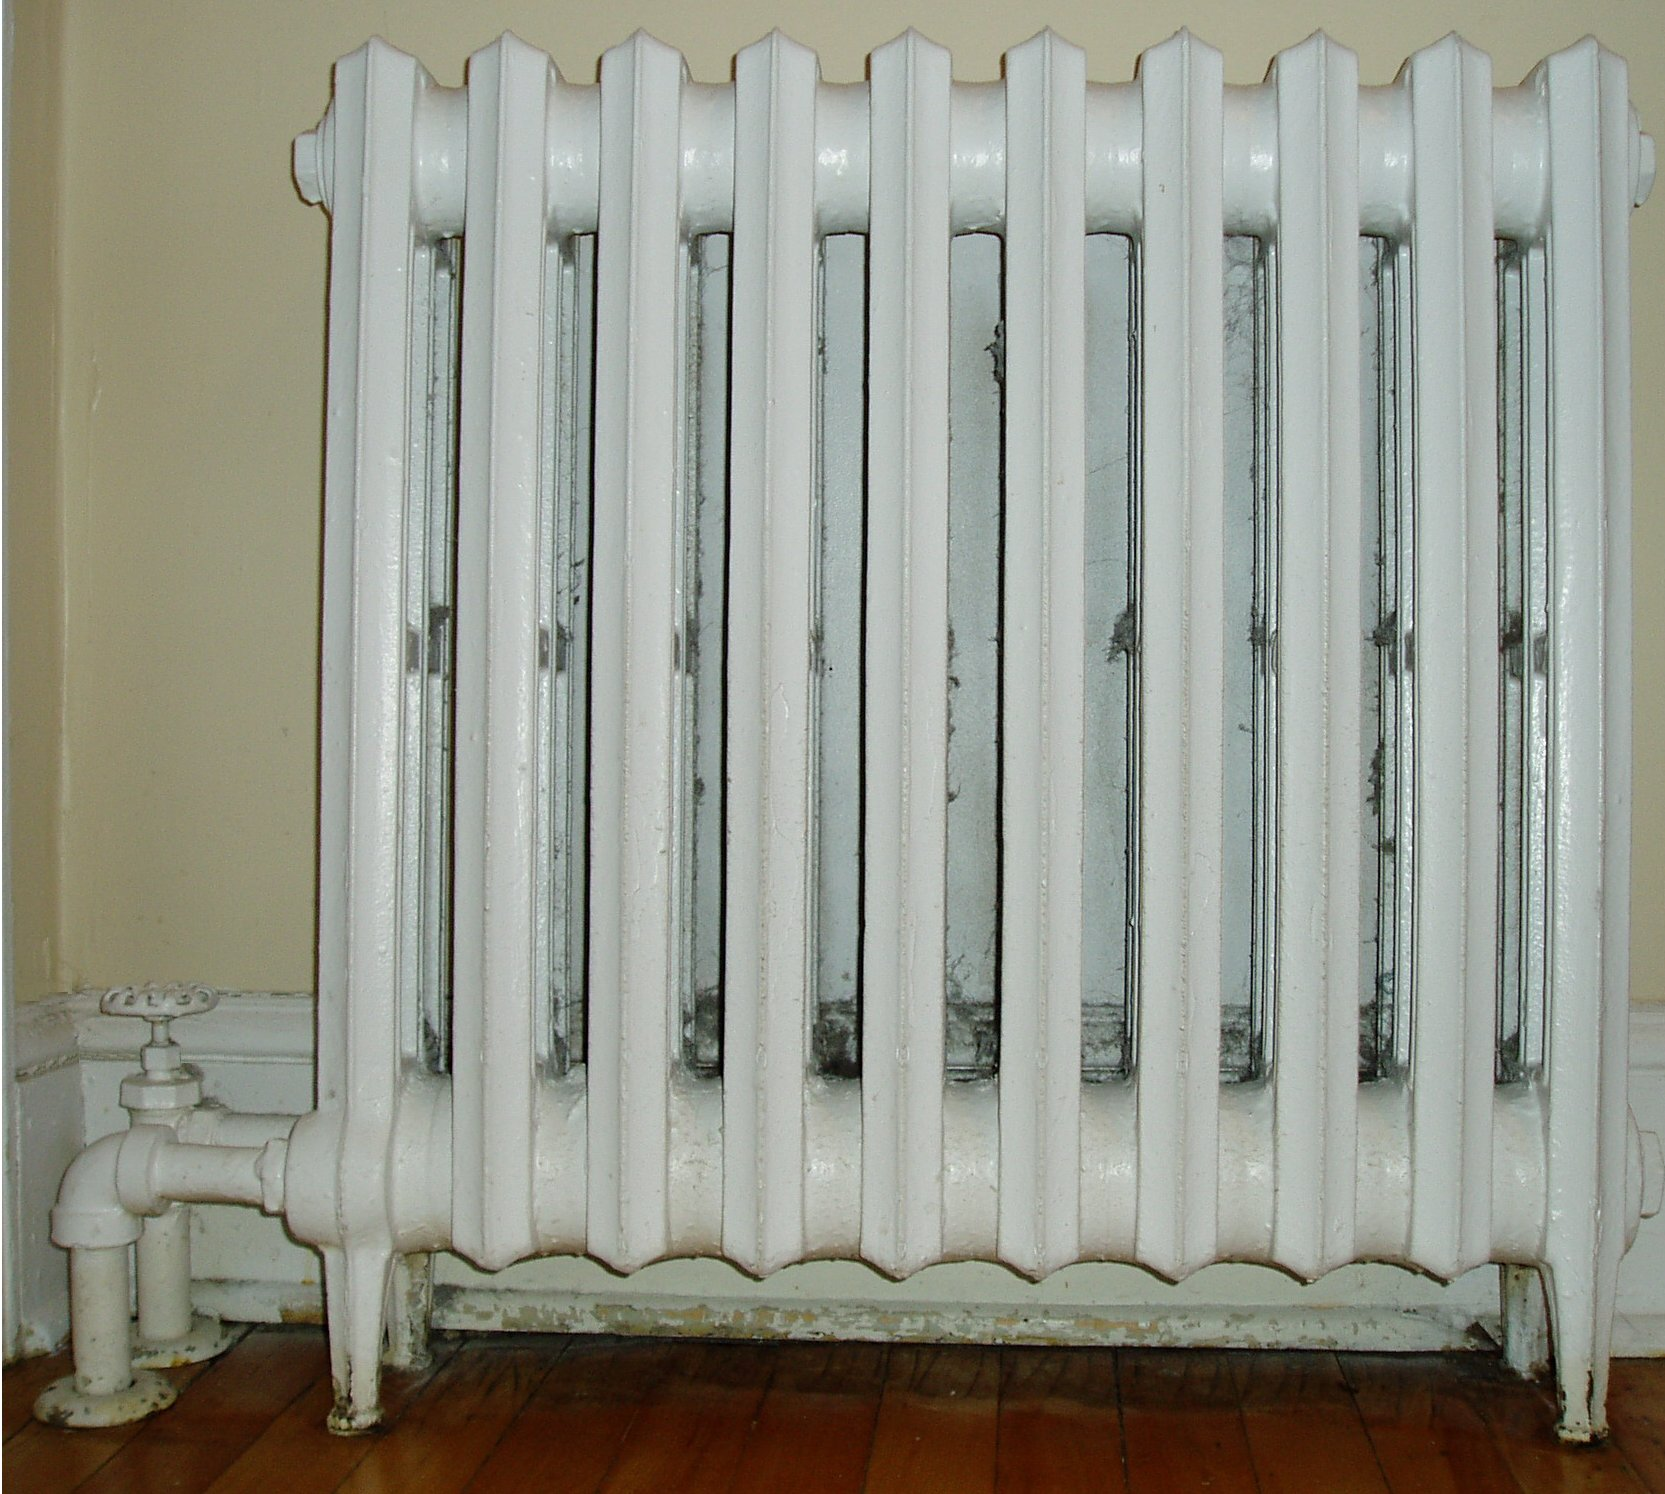 Type of heating